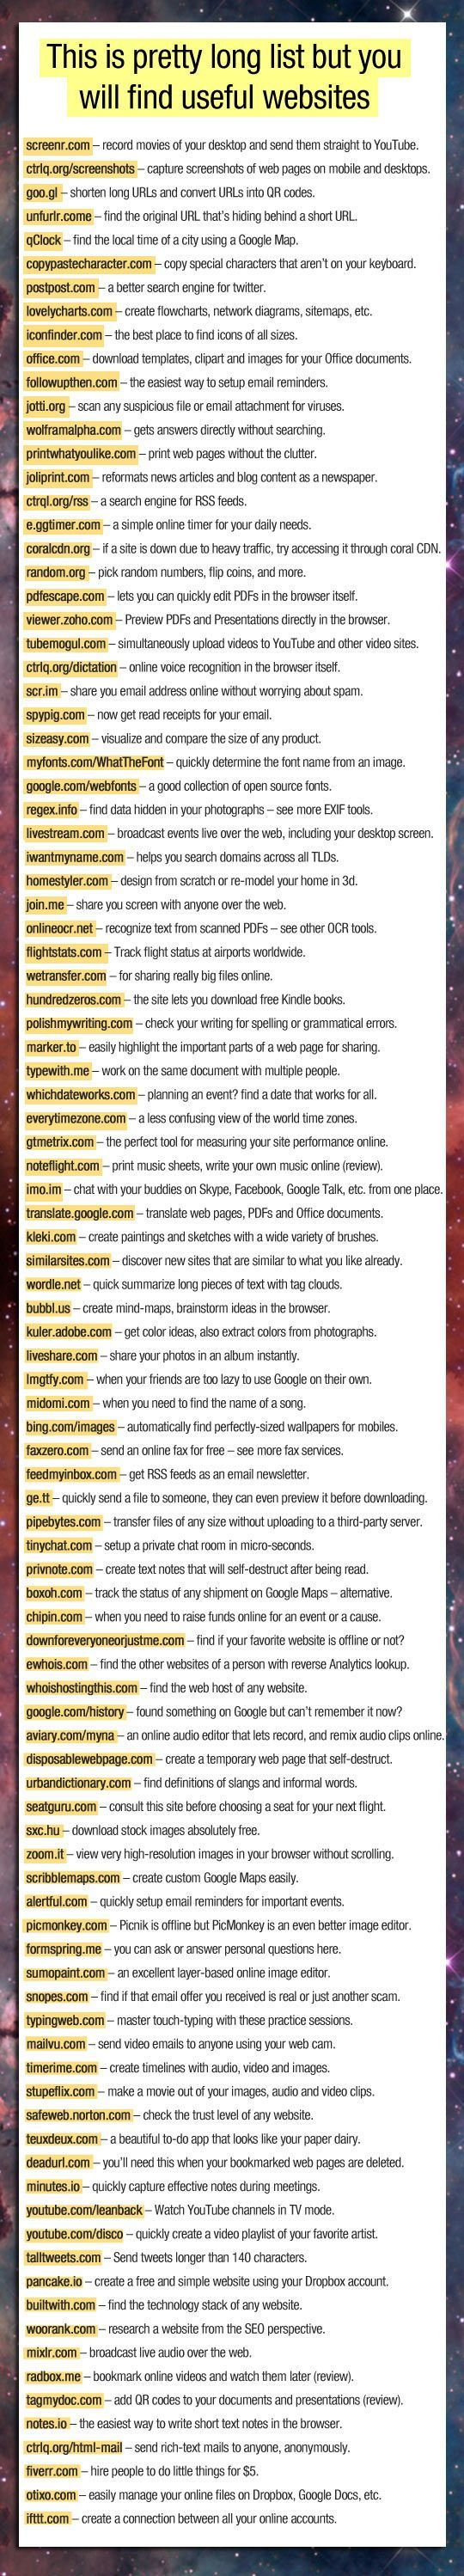 Amazing list of useful websites.